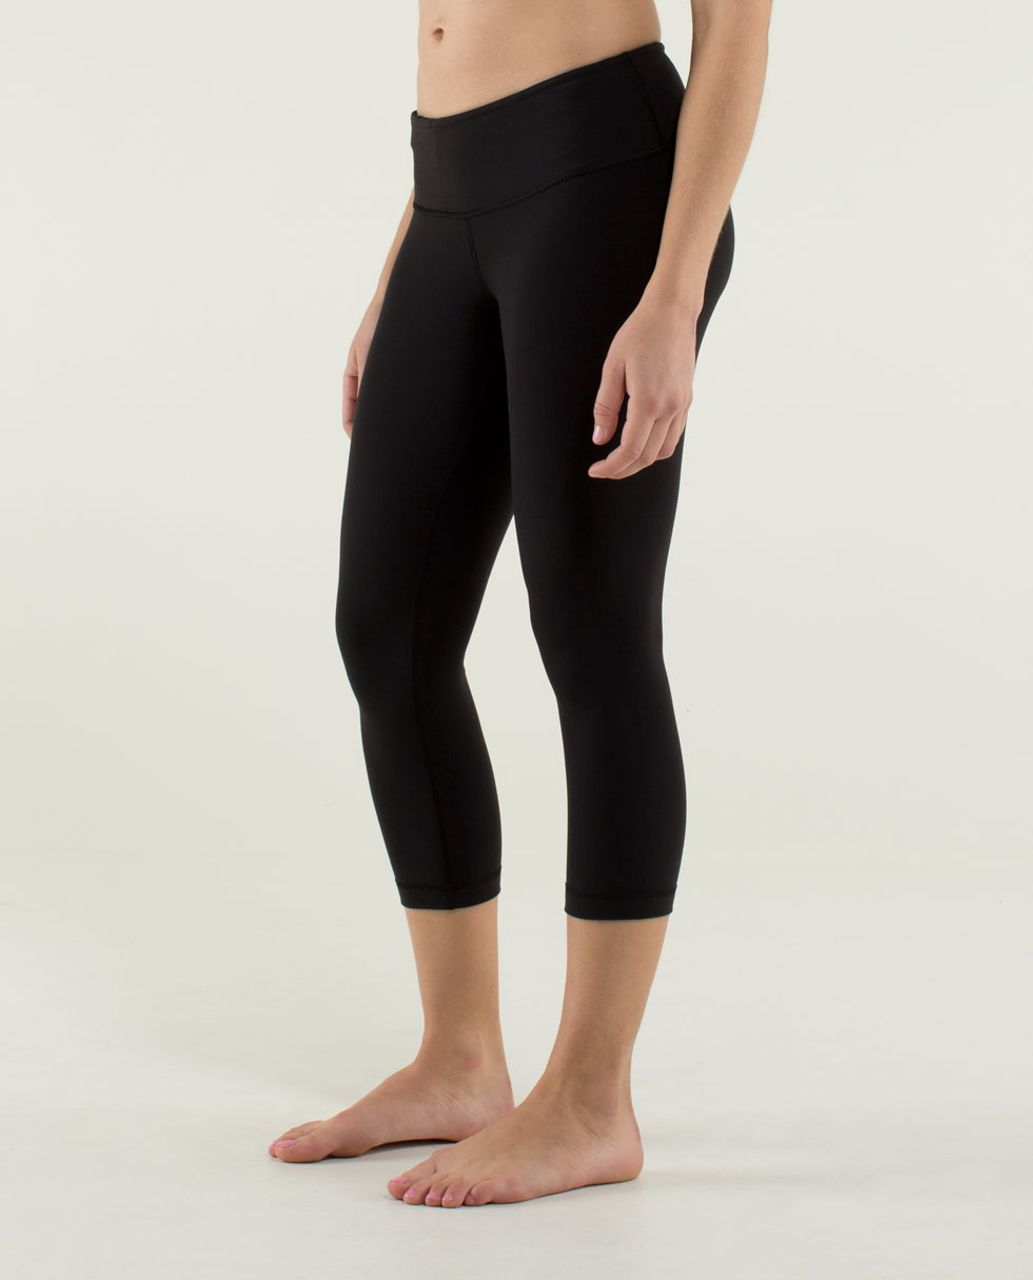 Lululemon Wunder Under Crop - Black / Quilt 14 Fall 2013